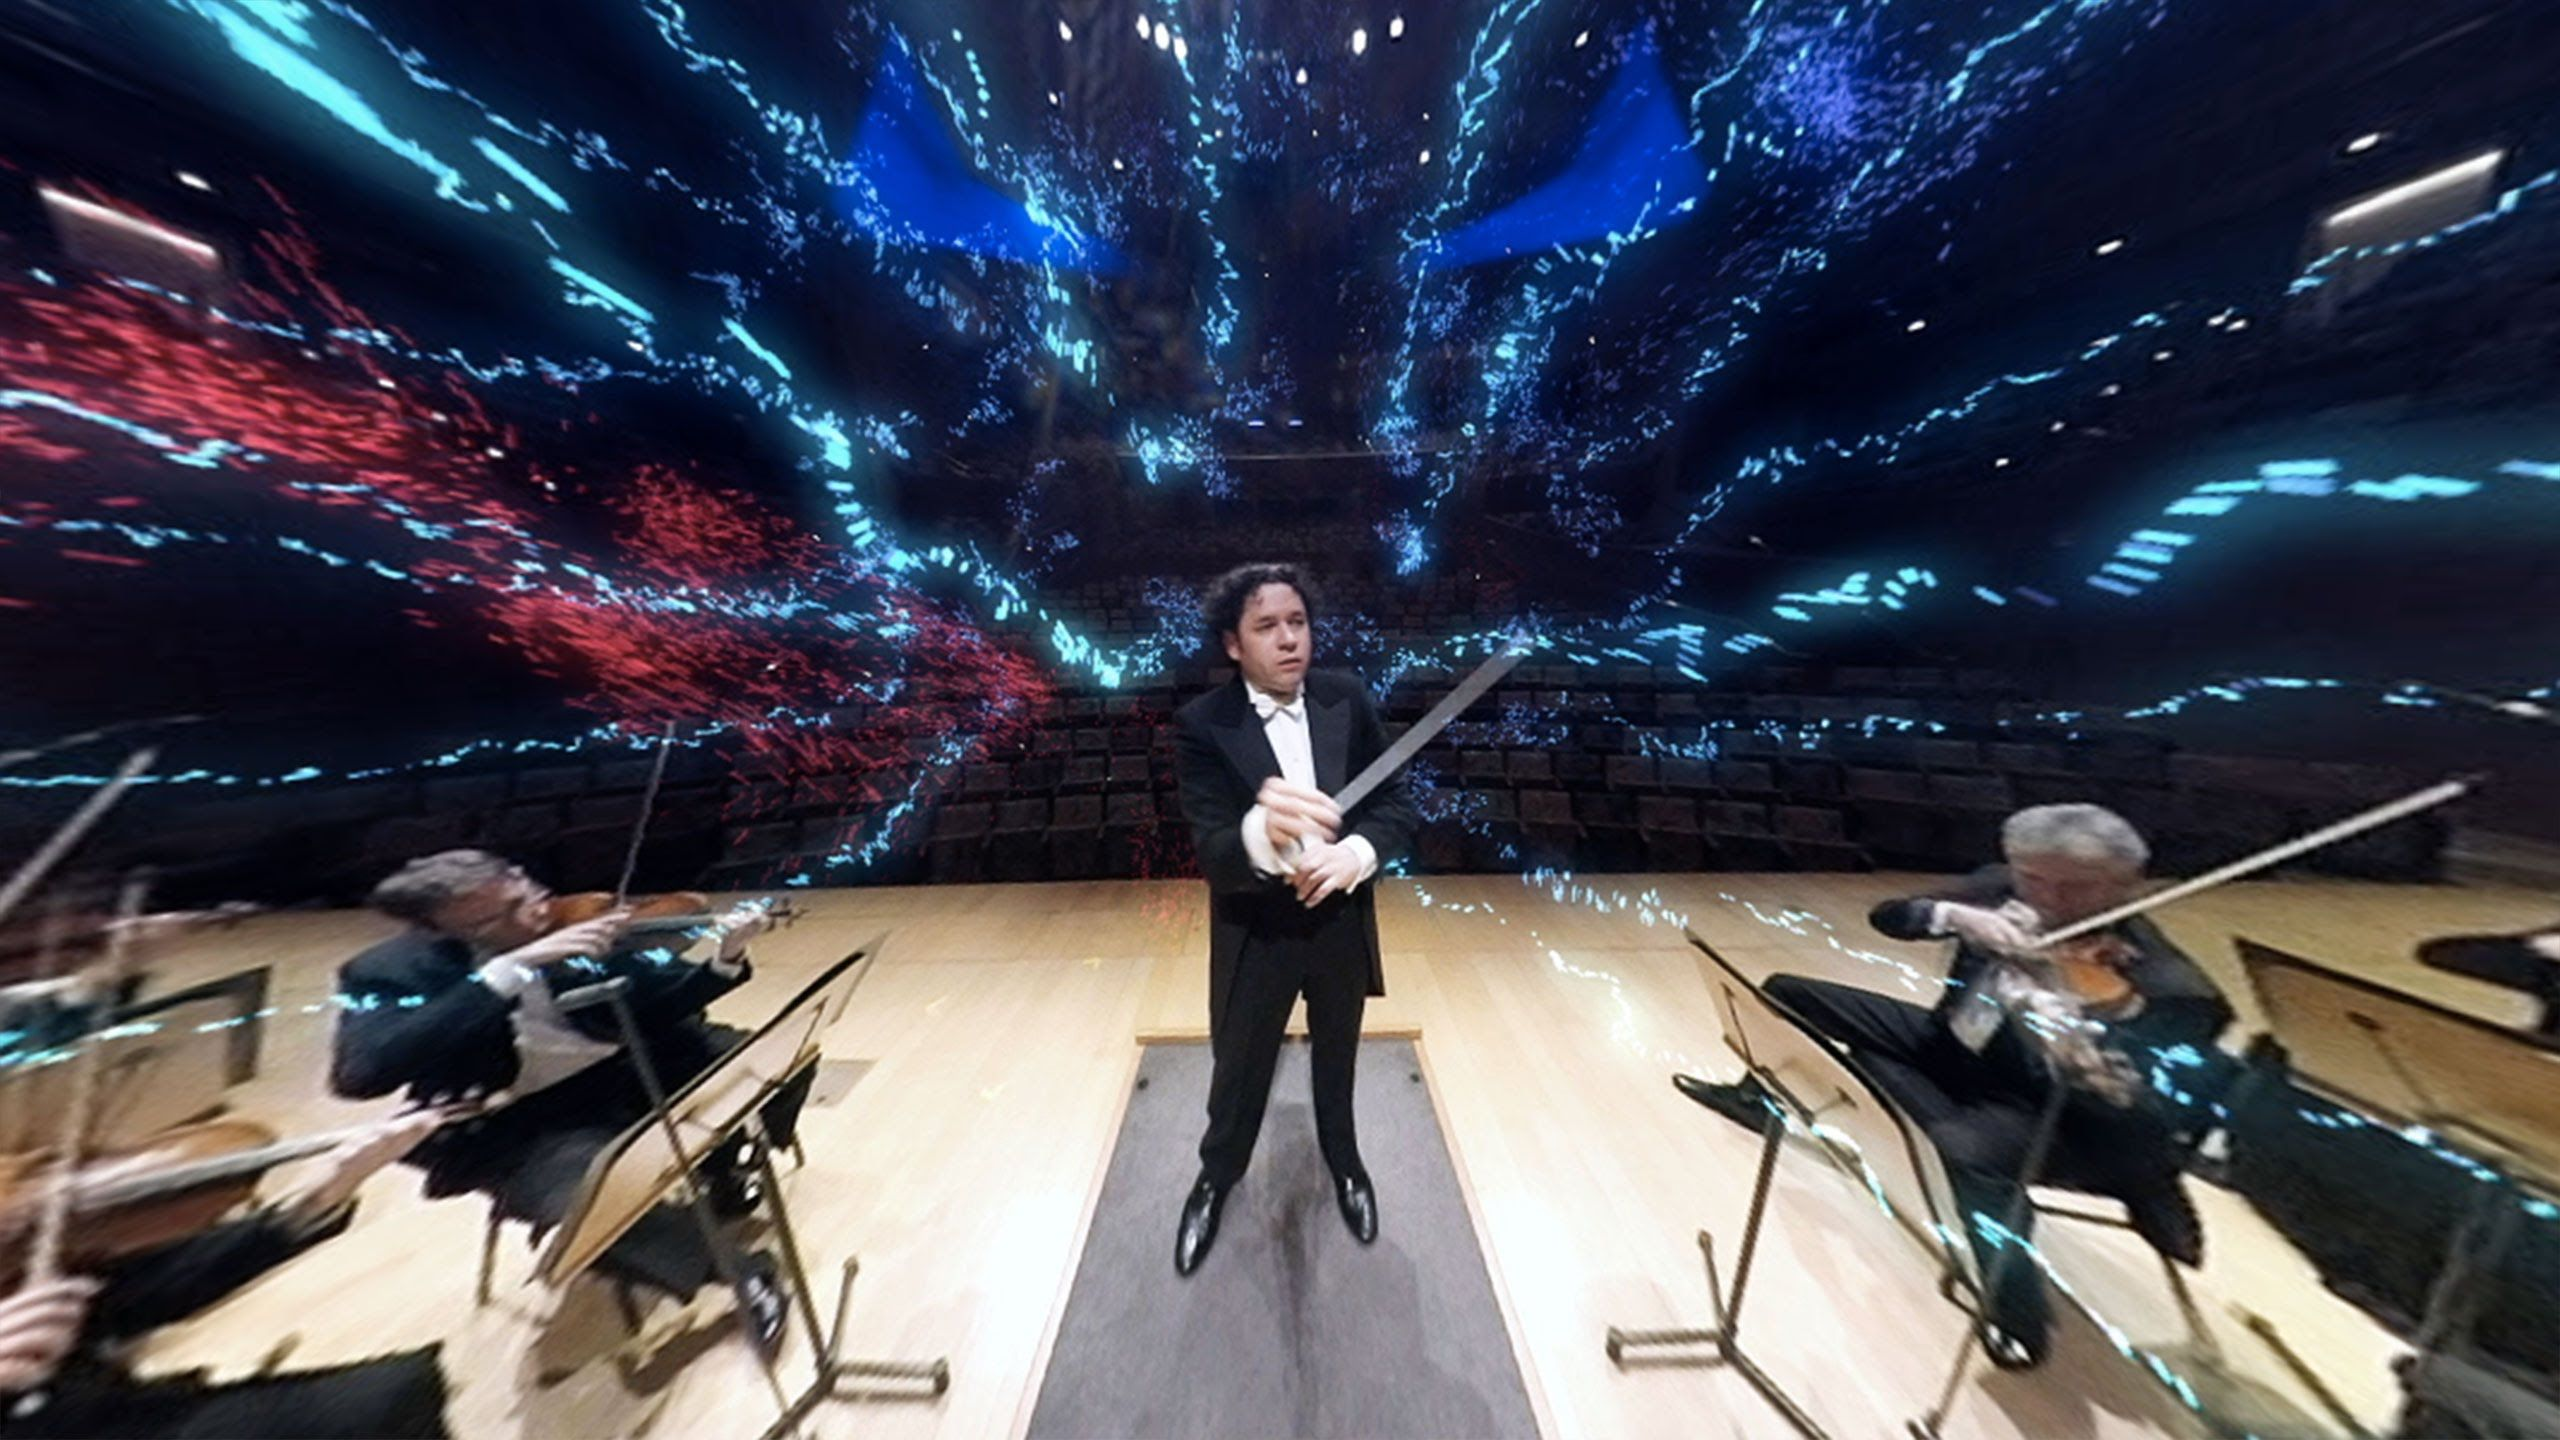 Orchestra VR